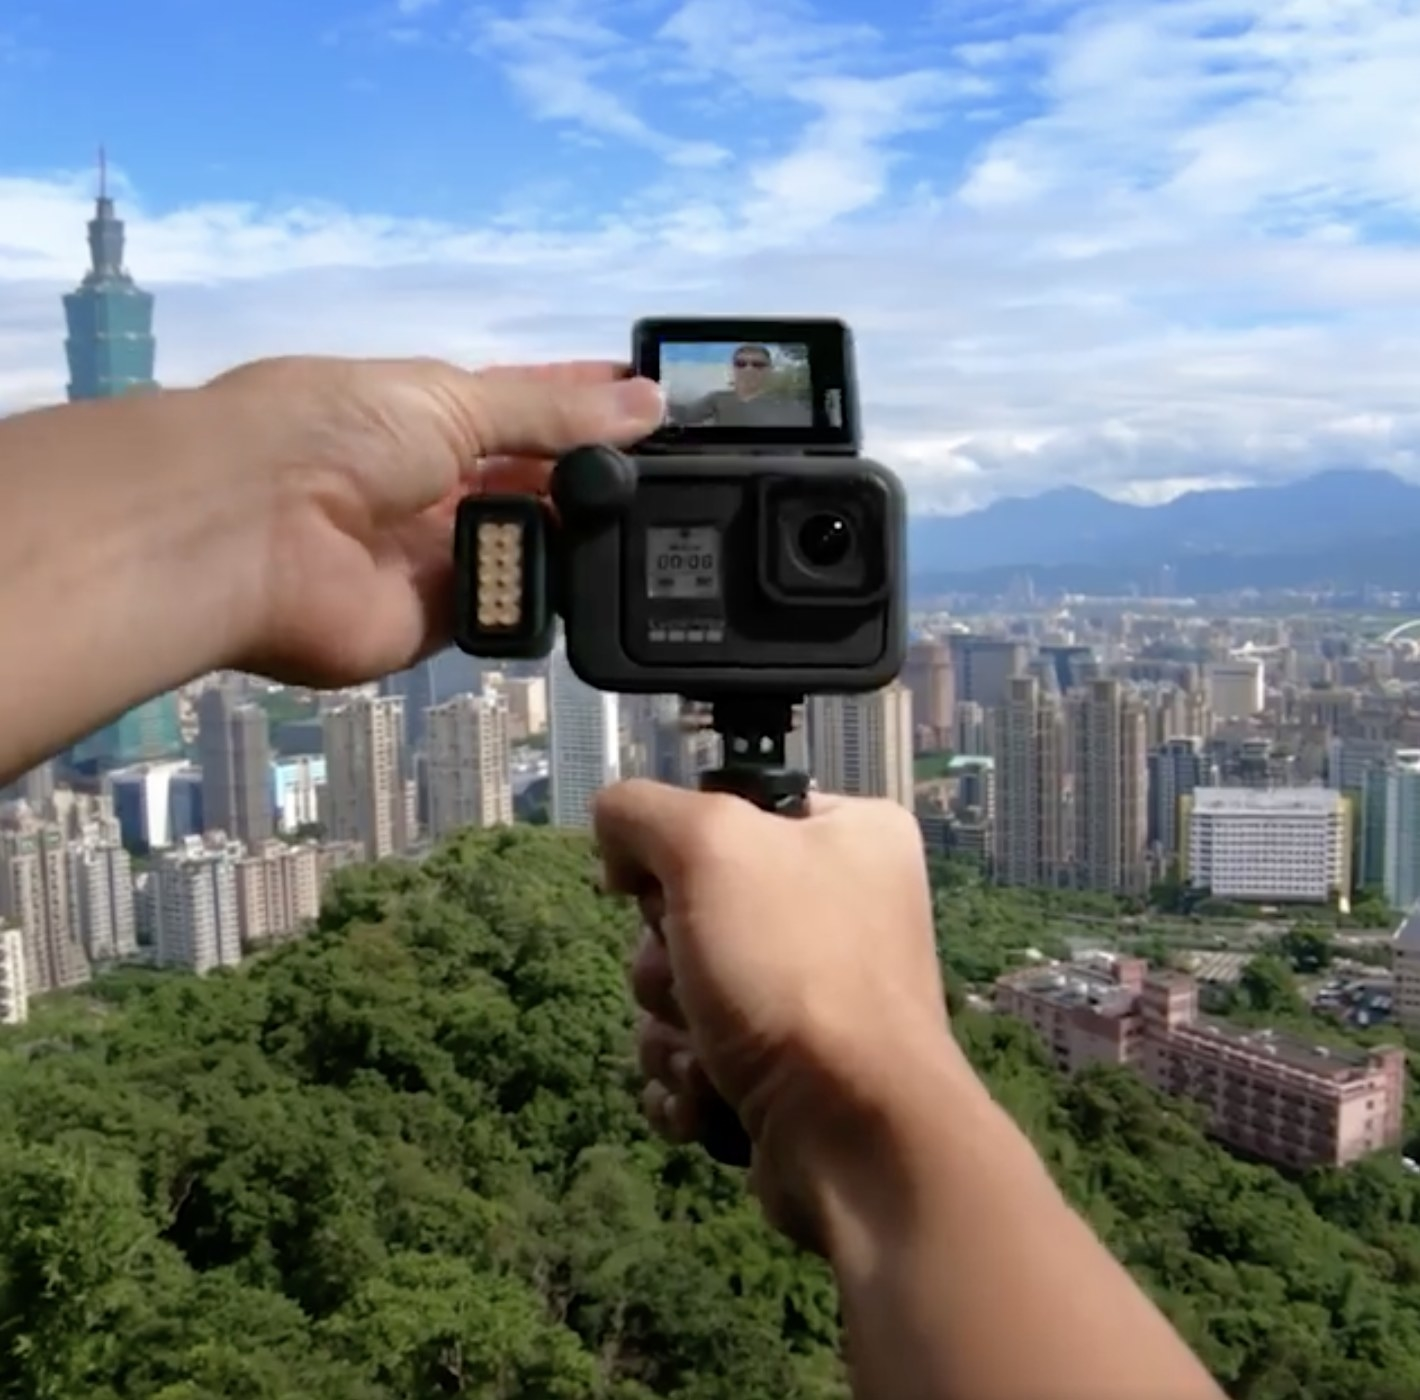 Person is holding a black GoPro